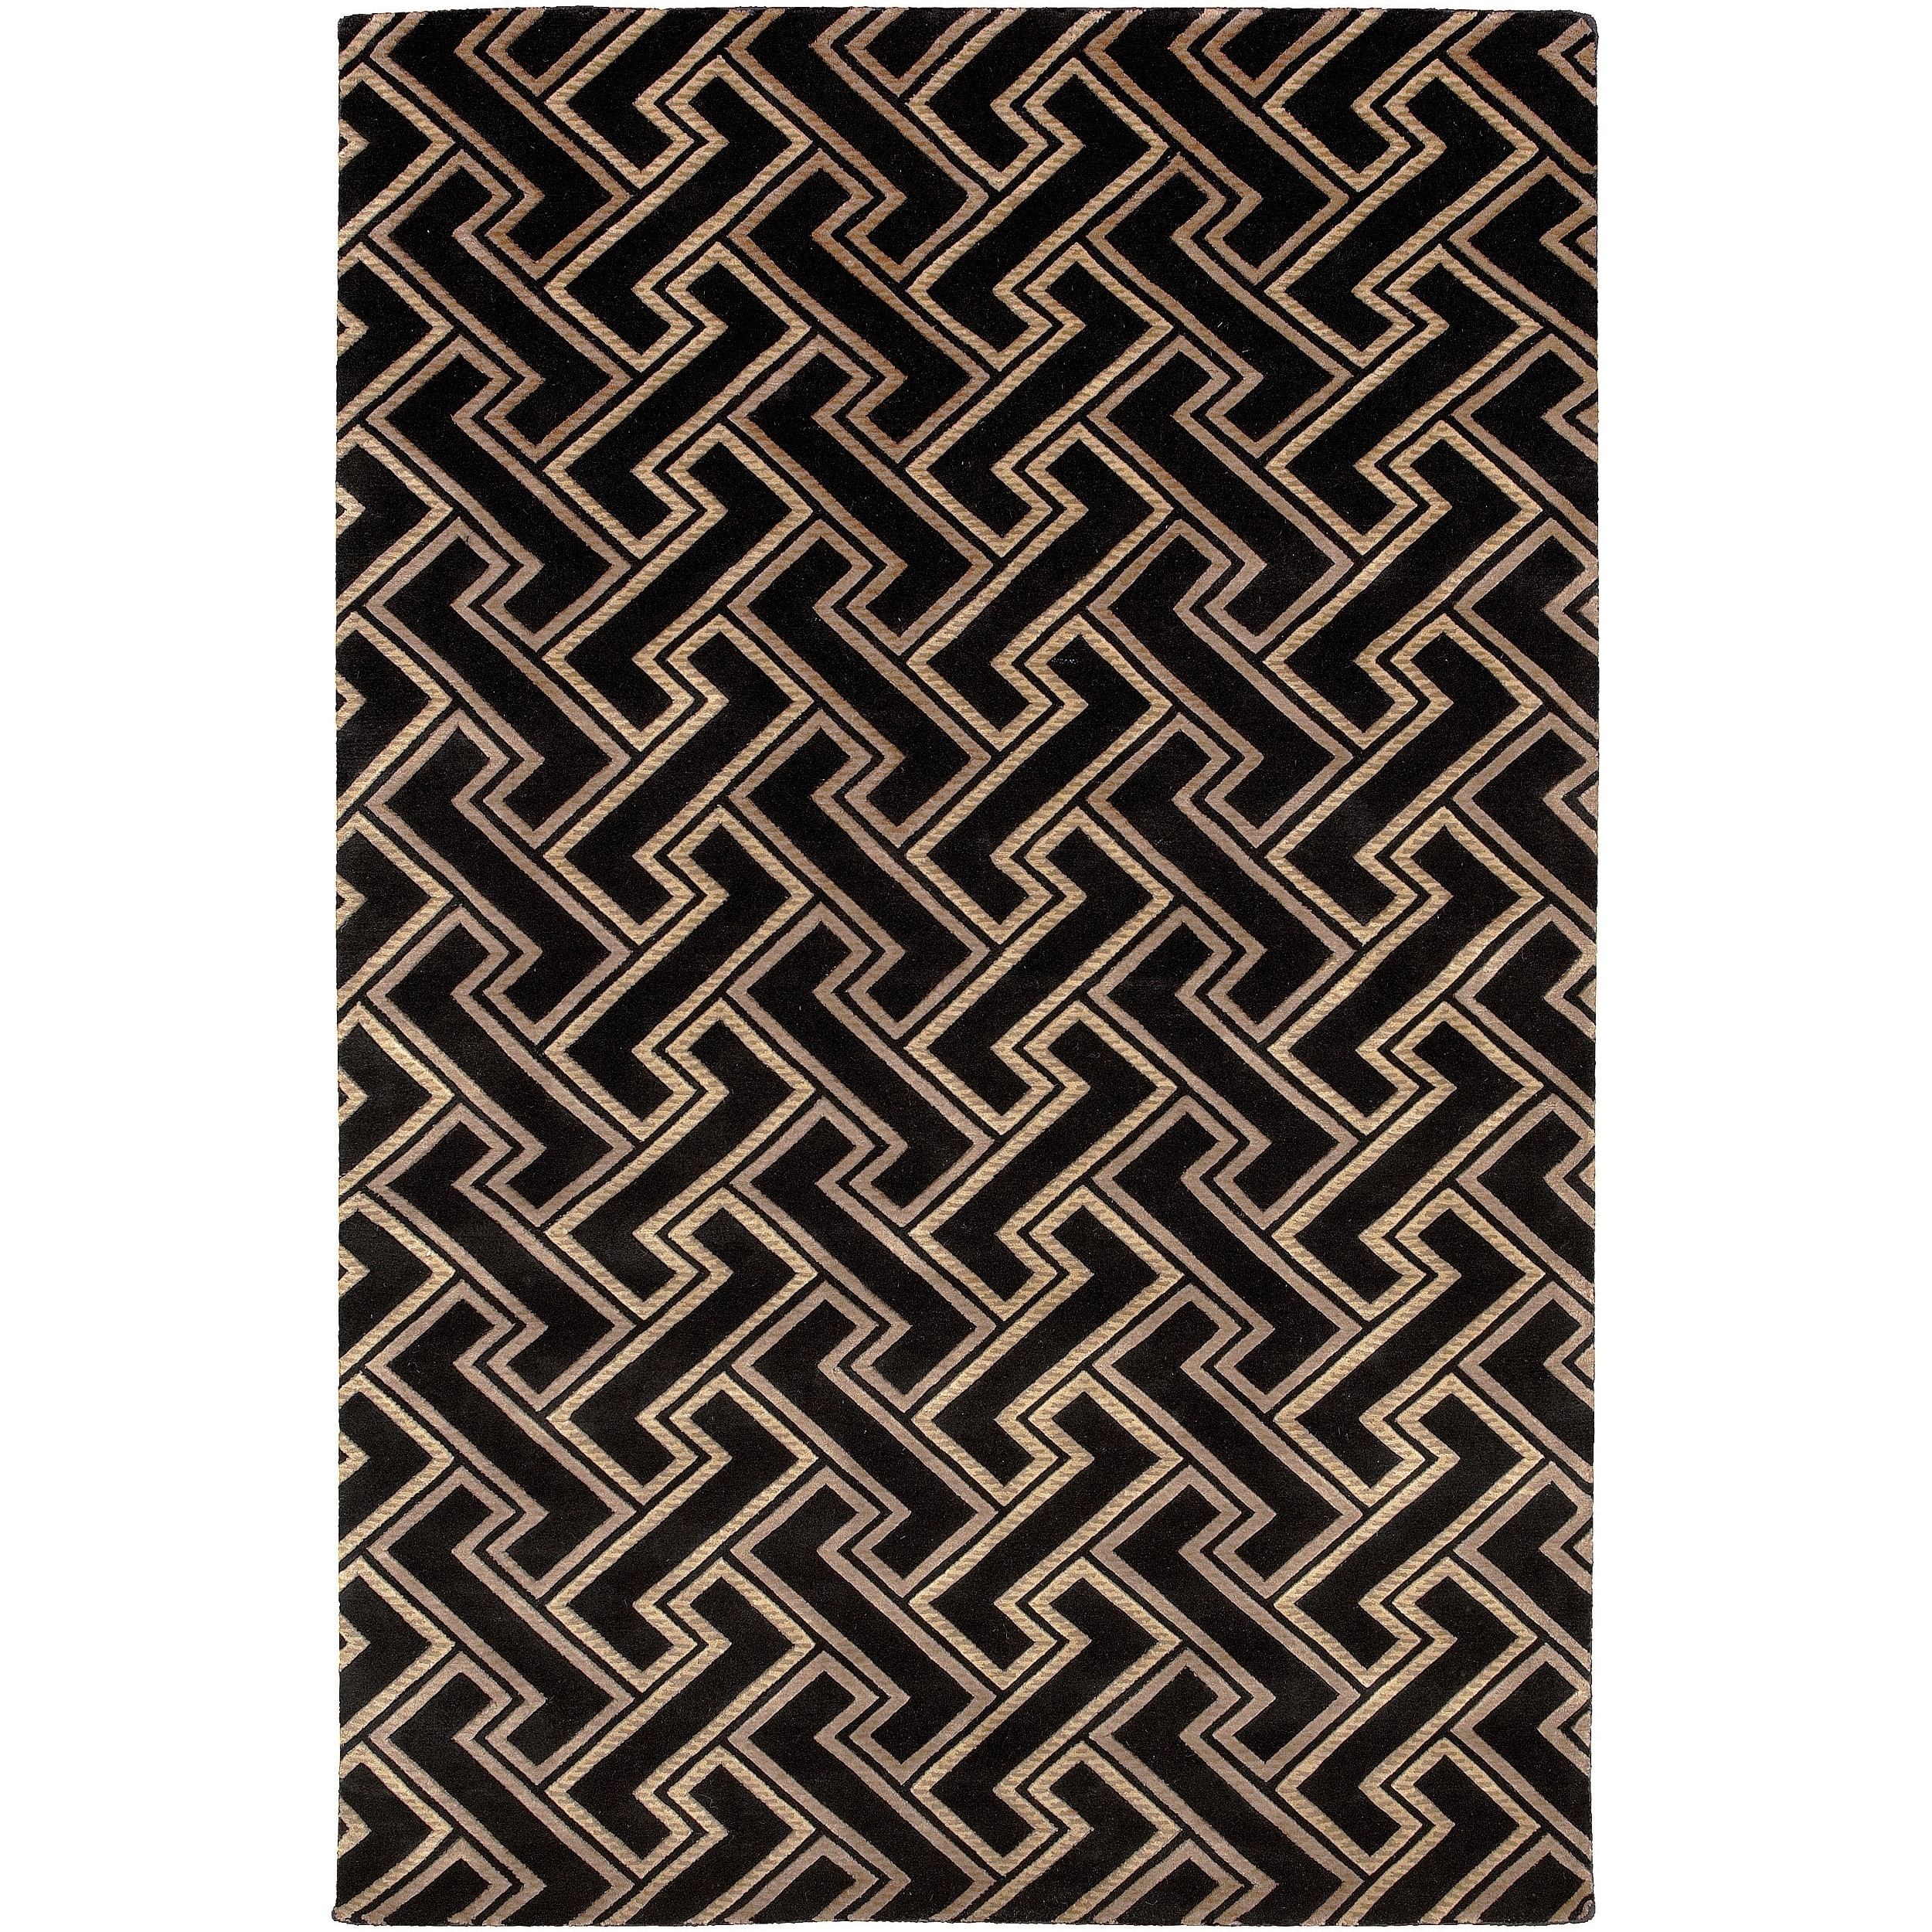 Hand-knotted 'Diego Martin' Black Basketweave Wool Rug (5' x 8')